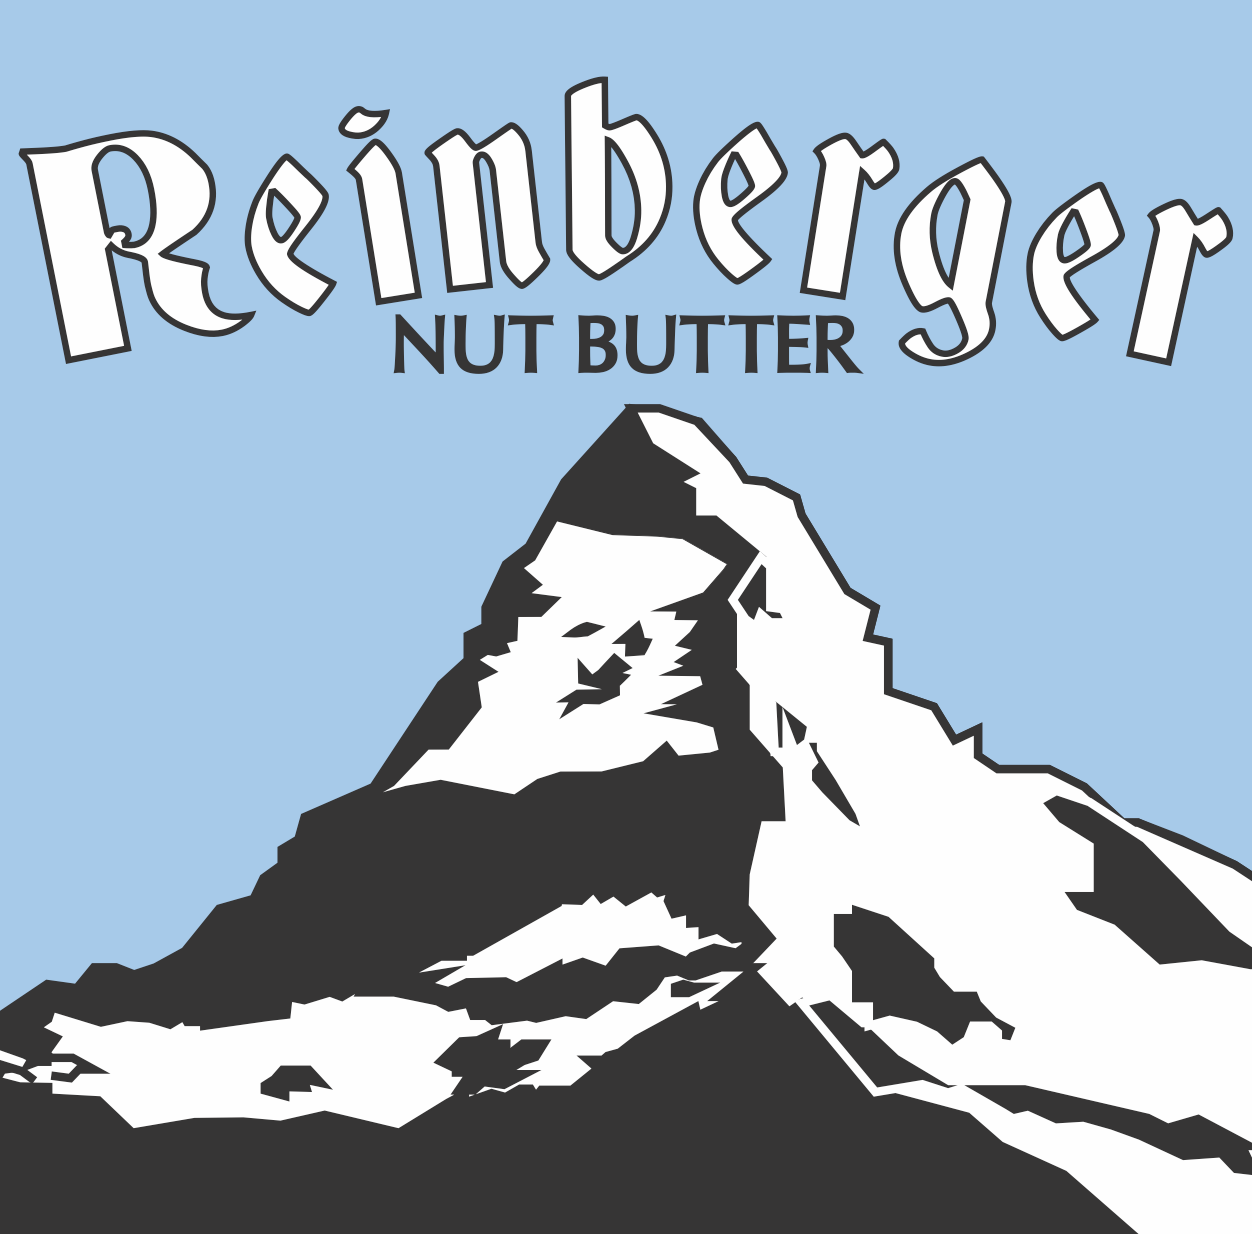 Reinberger Nut Butter original logo with lightly stylized mountain and complex text